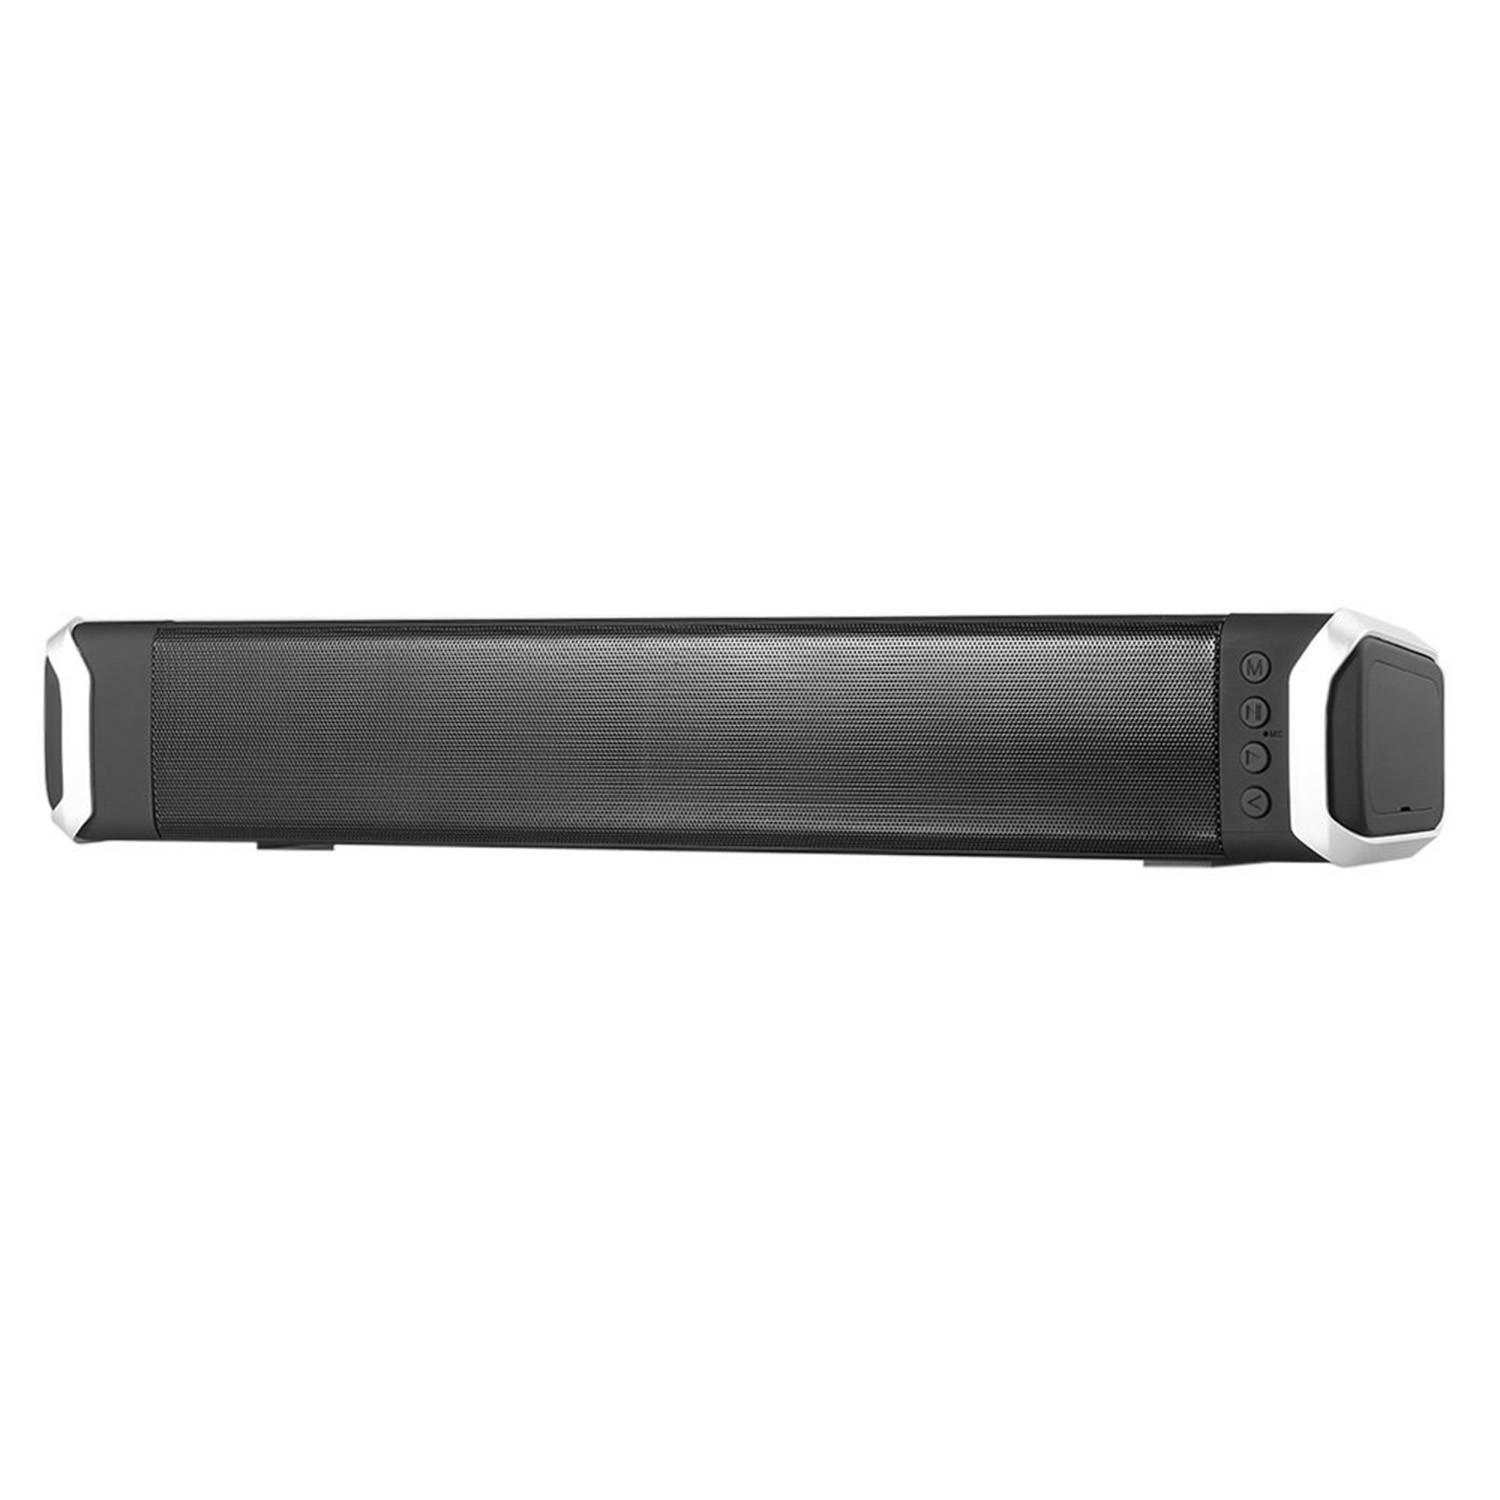 NewRiXing 10 watt Bluetooth Lautsprecher 3D Soundbar HIFI Wireless FM Radio Subwoofer Lautsprecher Für Telefon Computer Home Theatre SDY-019 (